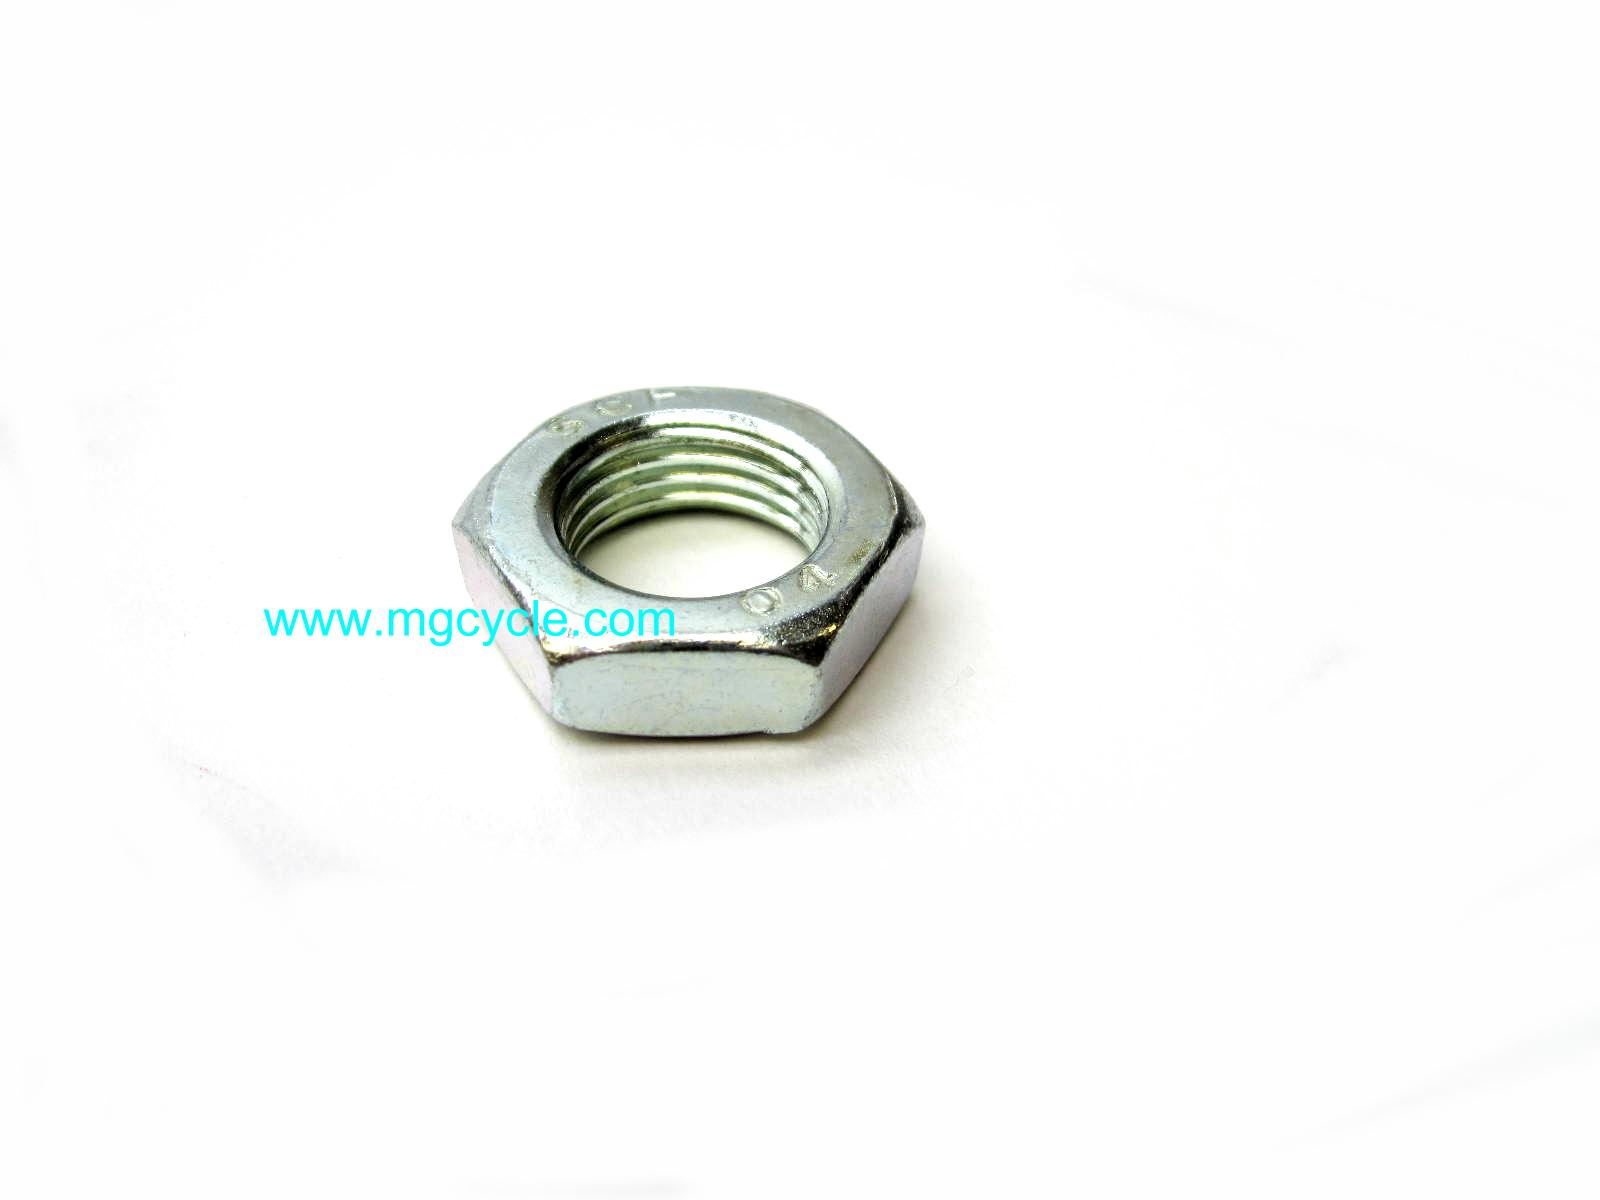 Axle nut, jam nut, M16 x 1.5, front axle many models